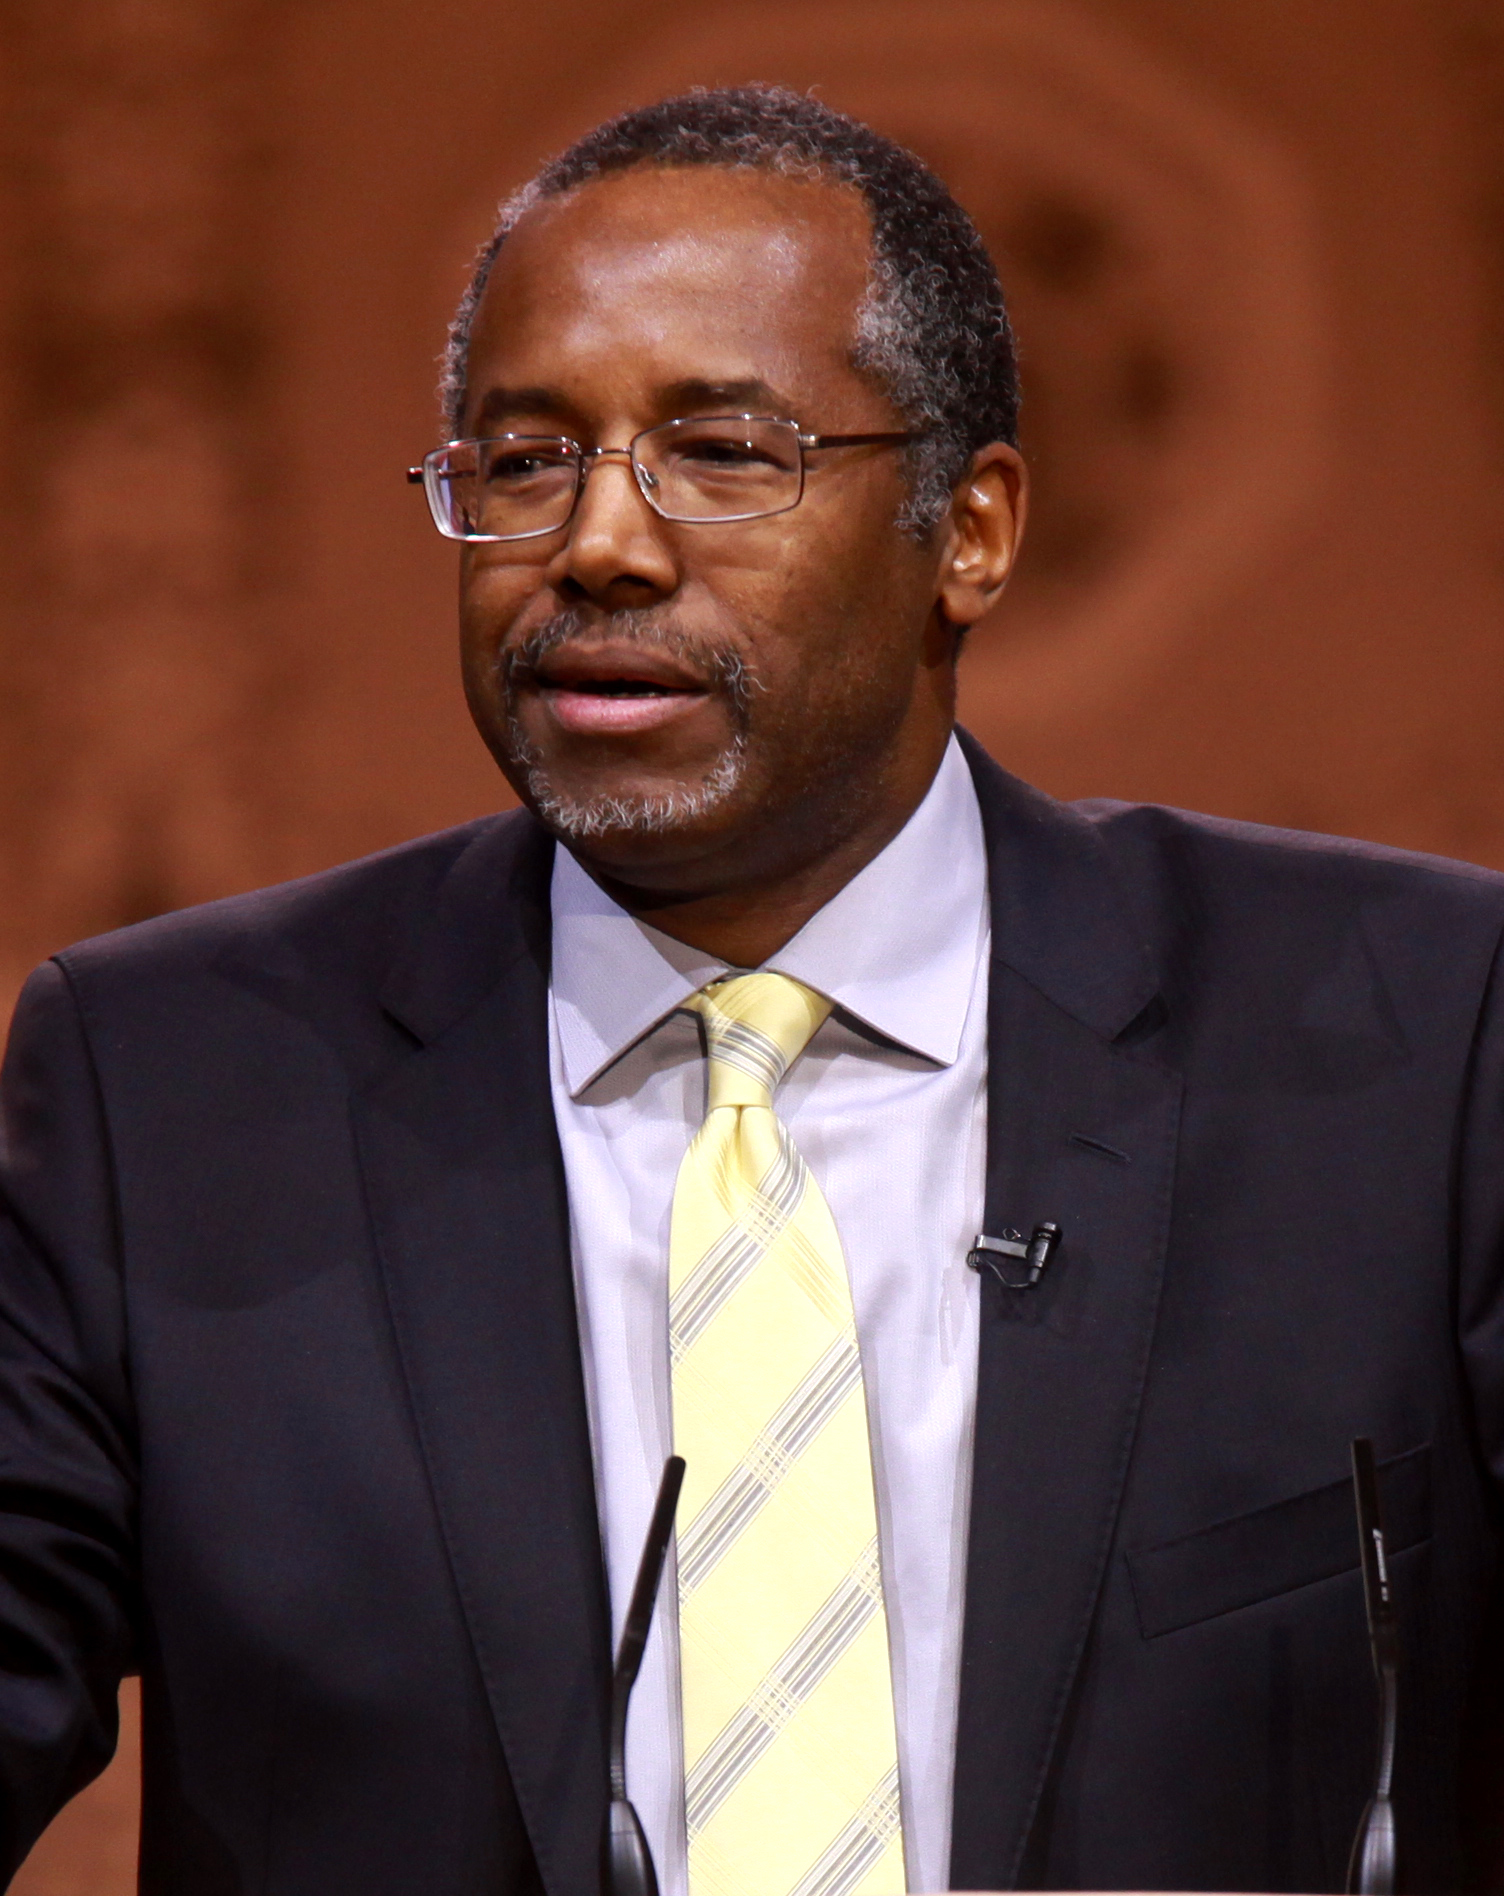 The 66-year old son of father Robert Solomon Carson and mother Sonya Carson, 188 cm tall Ben Carson in 2017 photo